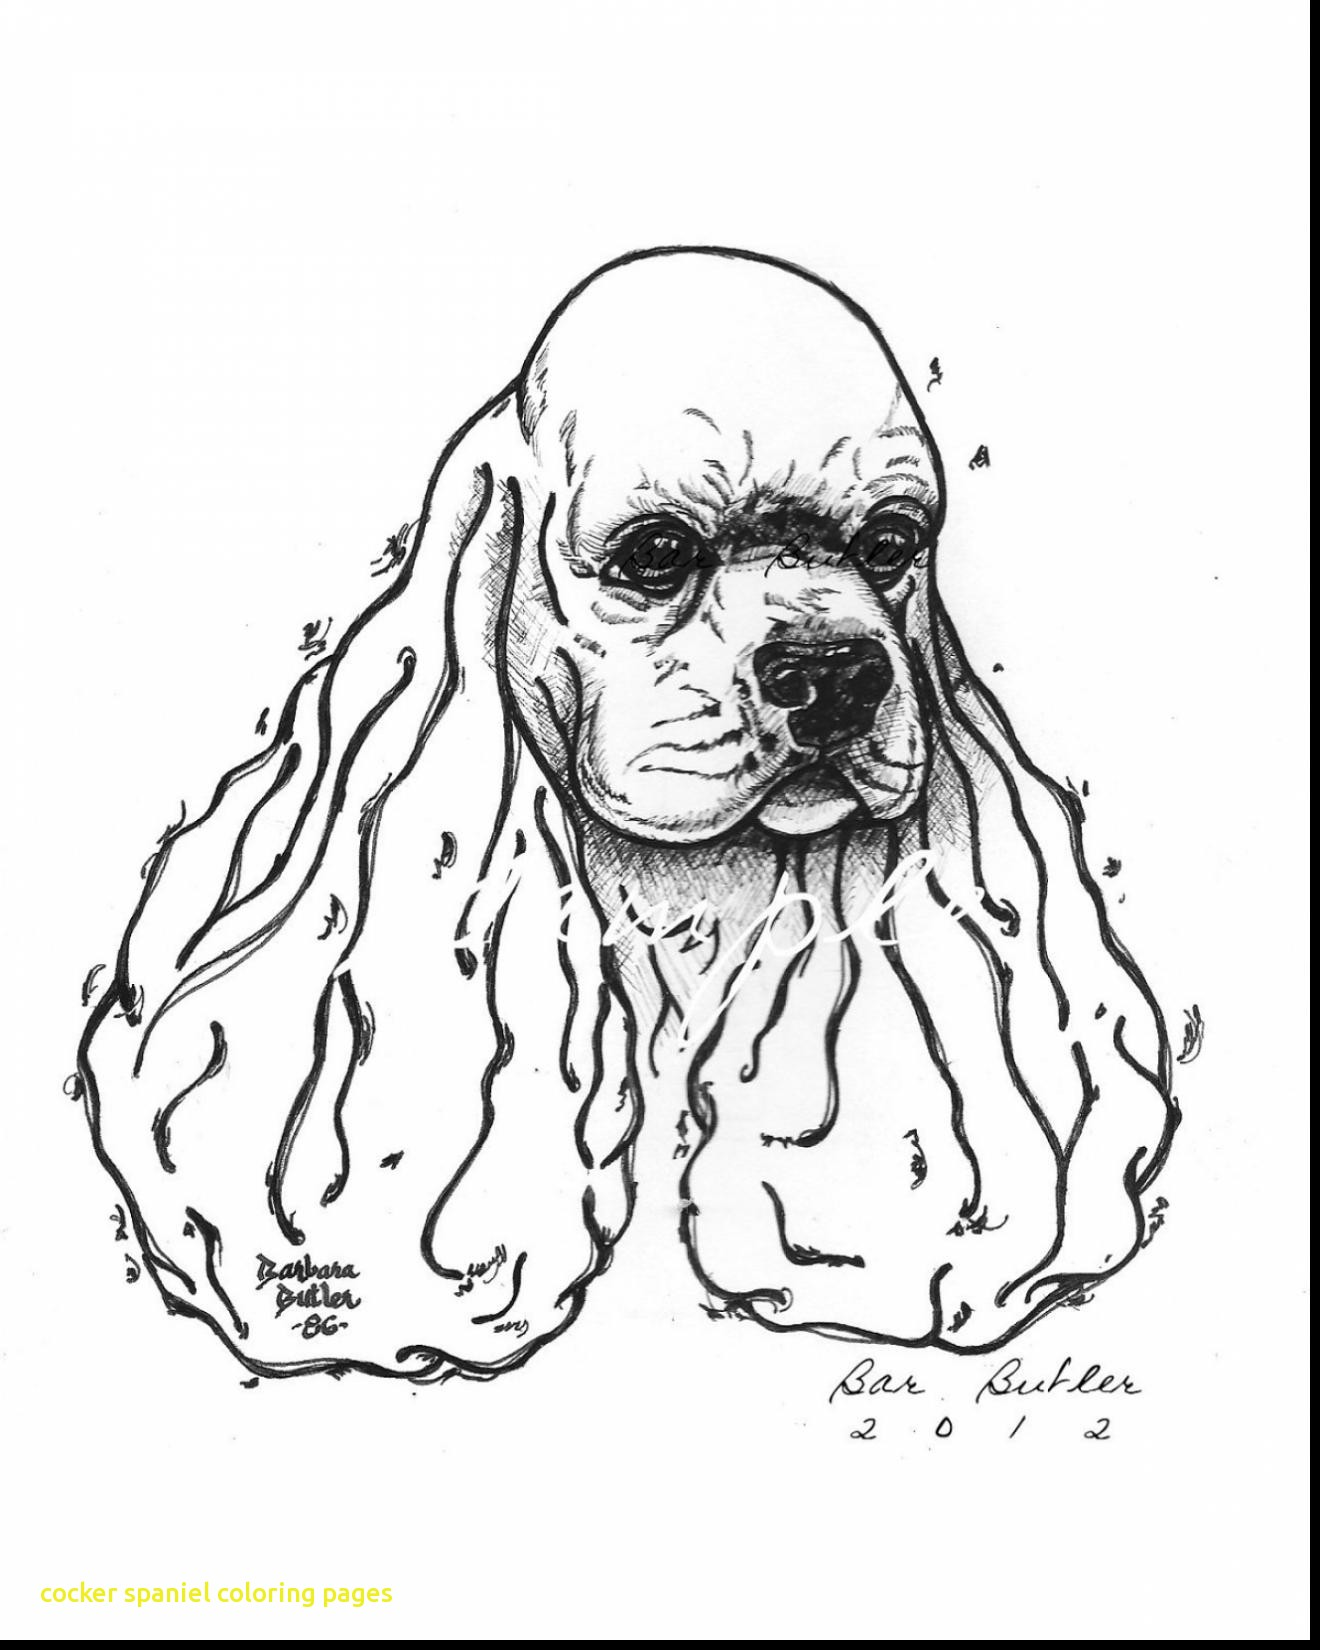 1320x1650 Cocker Spaniel Coloring Pages With Stunning Cocker Spaniel